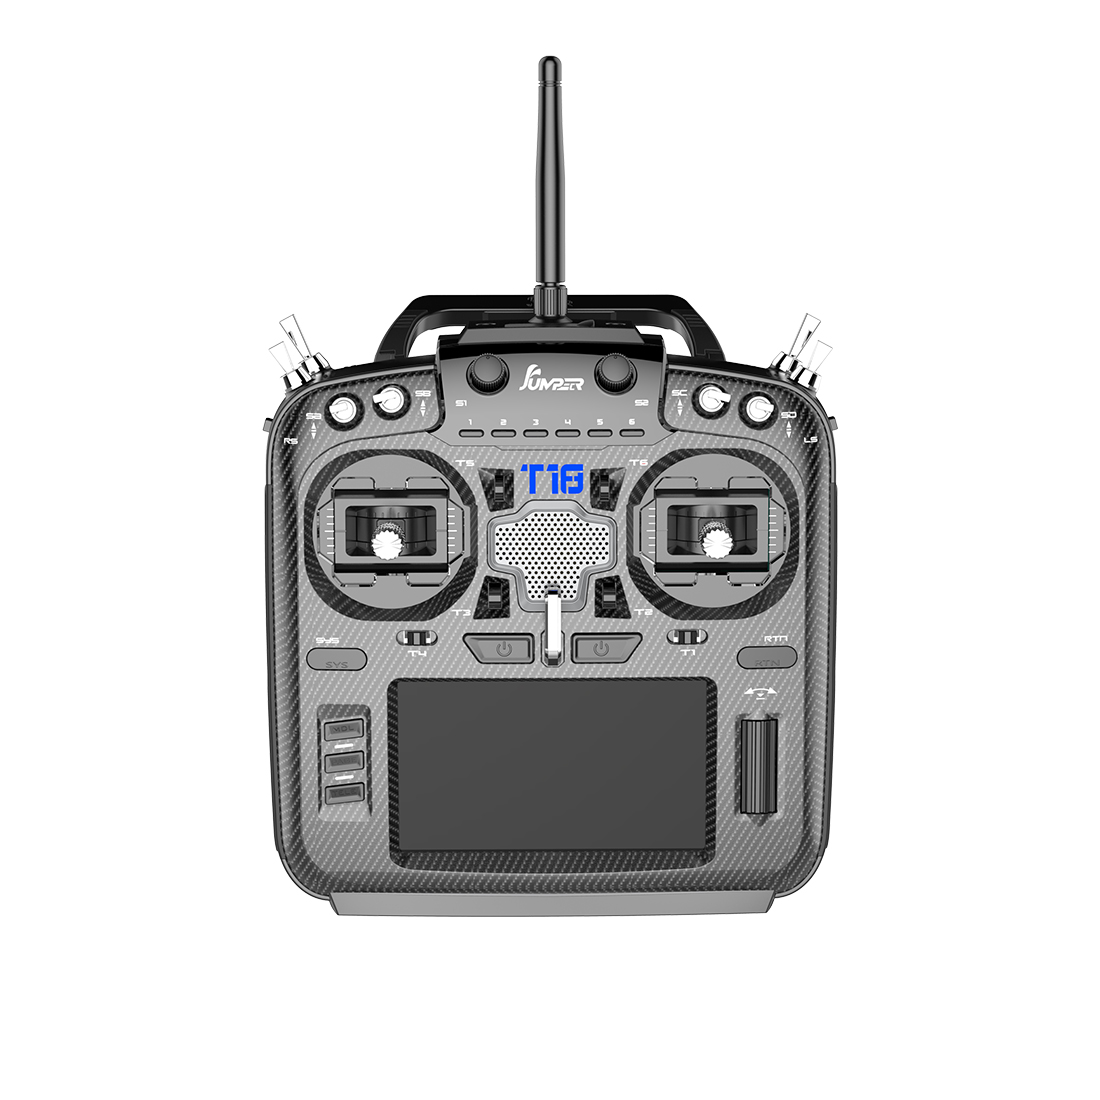 Pre-sale Jumper T18 Hall Gimbal Open Source Multi-protocol Radio Transmitter Upgrade JP4IN1 To JP5in1 Module 2.4G 915mhz VS T16